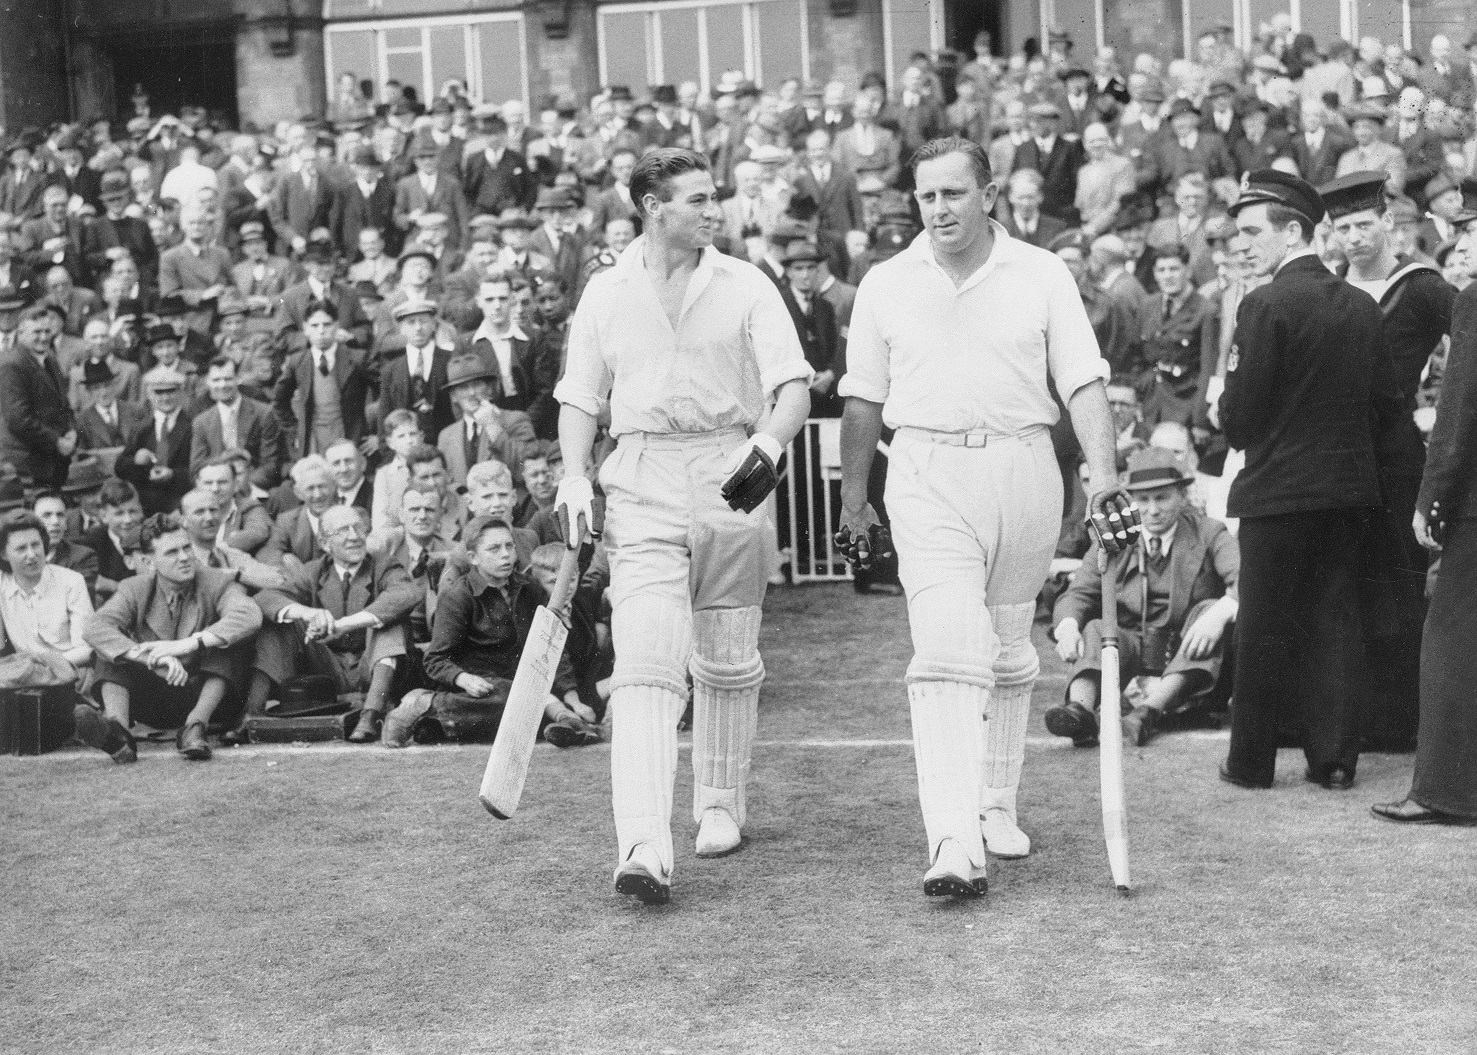 Keith Miller (left) and Cec Petter go out to bat in a Victory Test in 1945